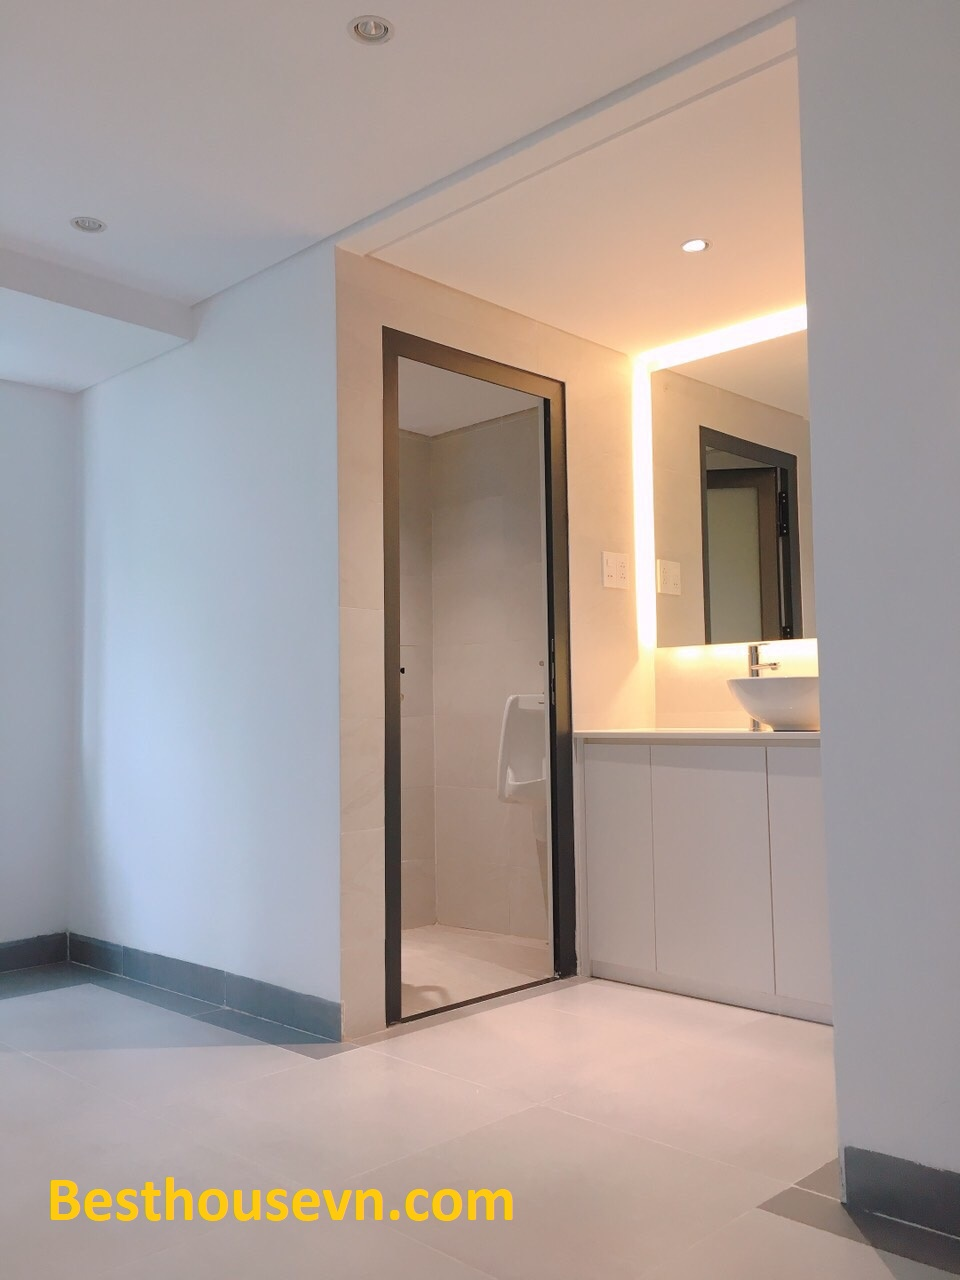 house-for-rent-in-phu-my-hung-district-7-hcmc-vietnam